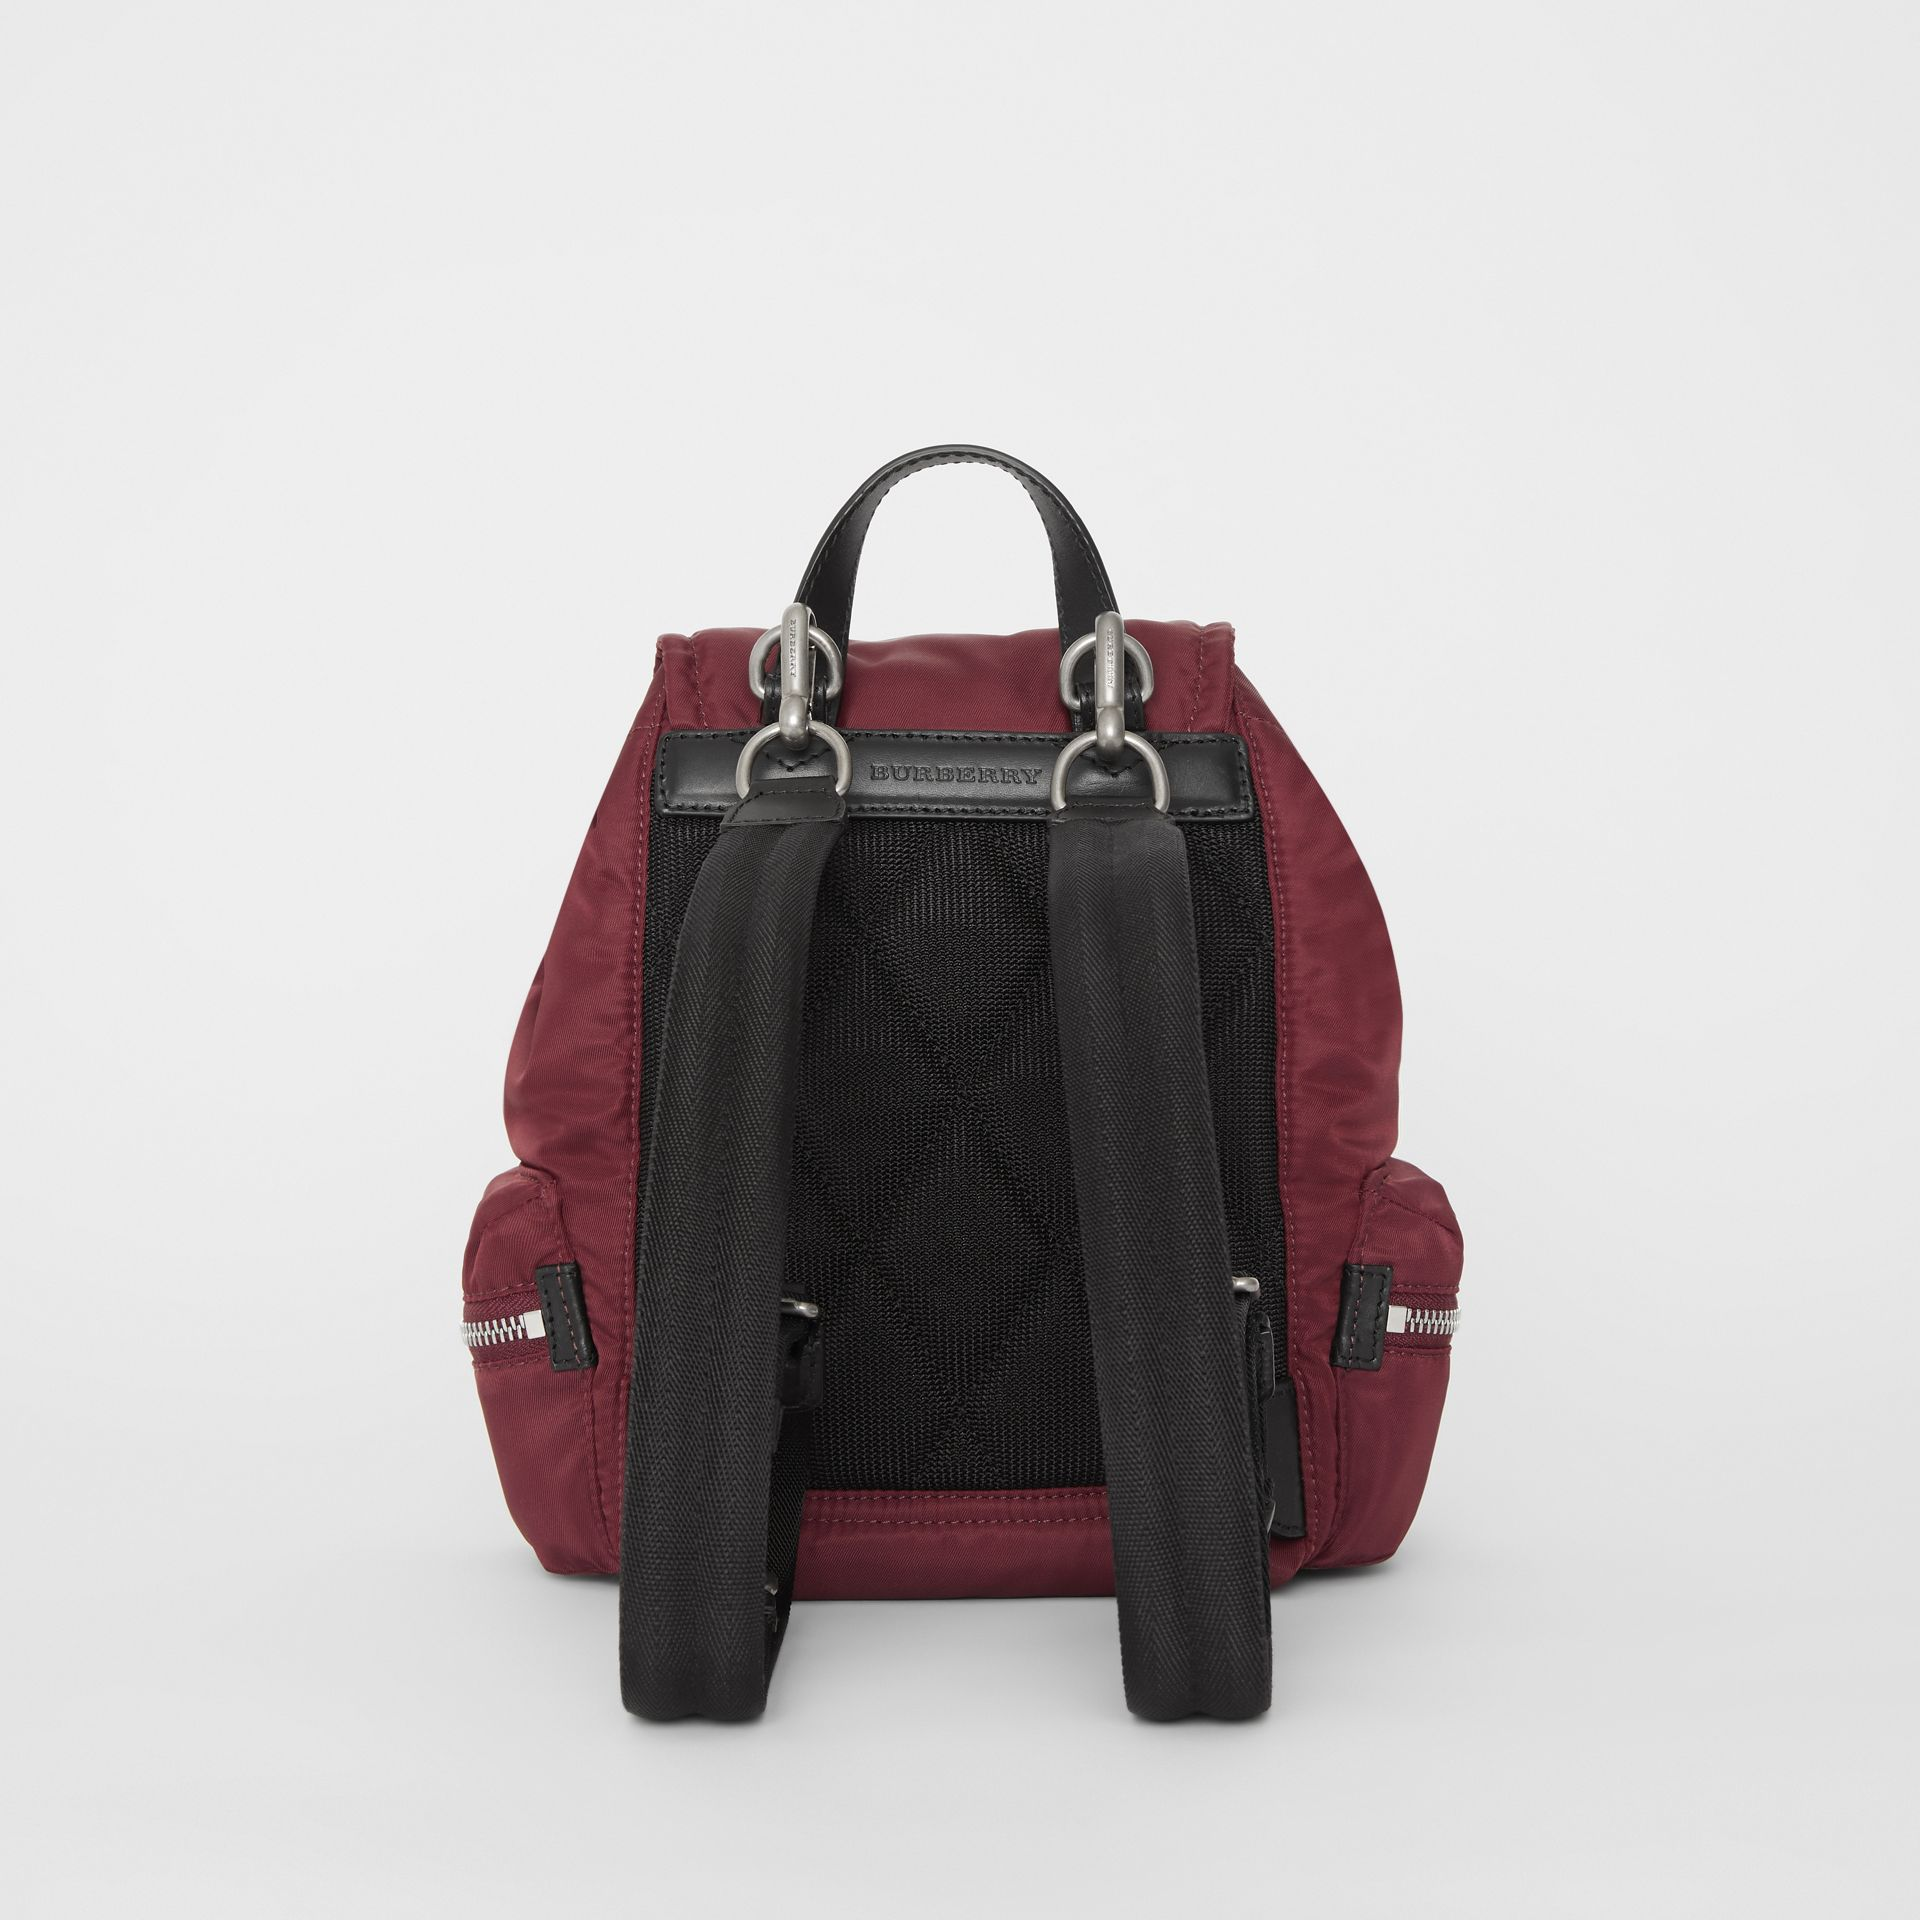 The Small Crossbody Rucksack in Puffer Nylon in Burgundy Red - Women | Burberry Singapore - gallery image 8